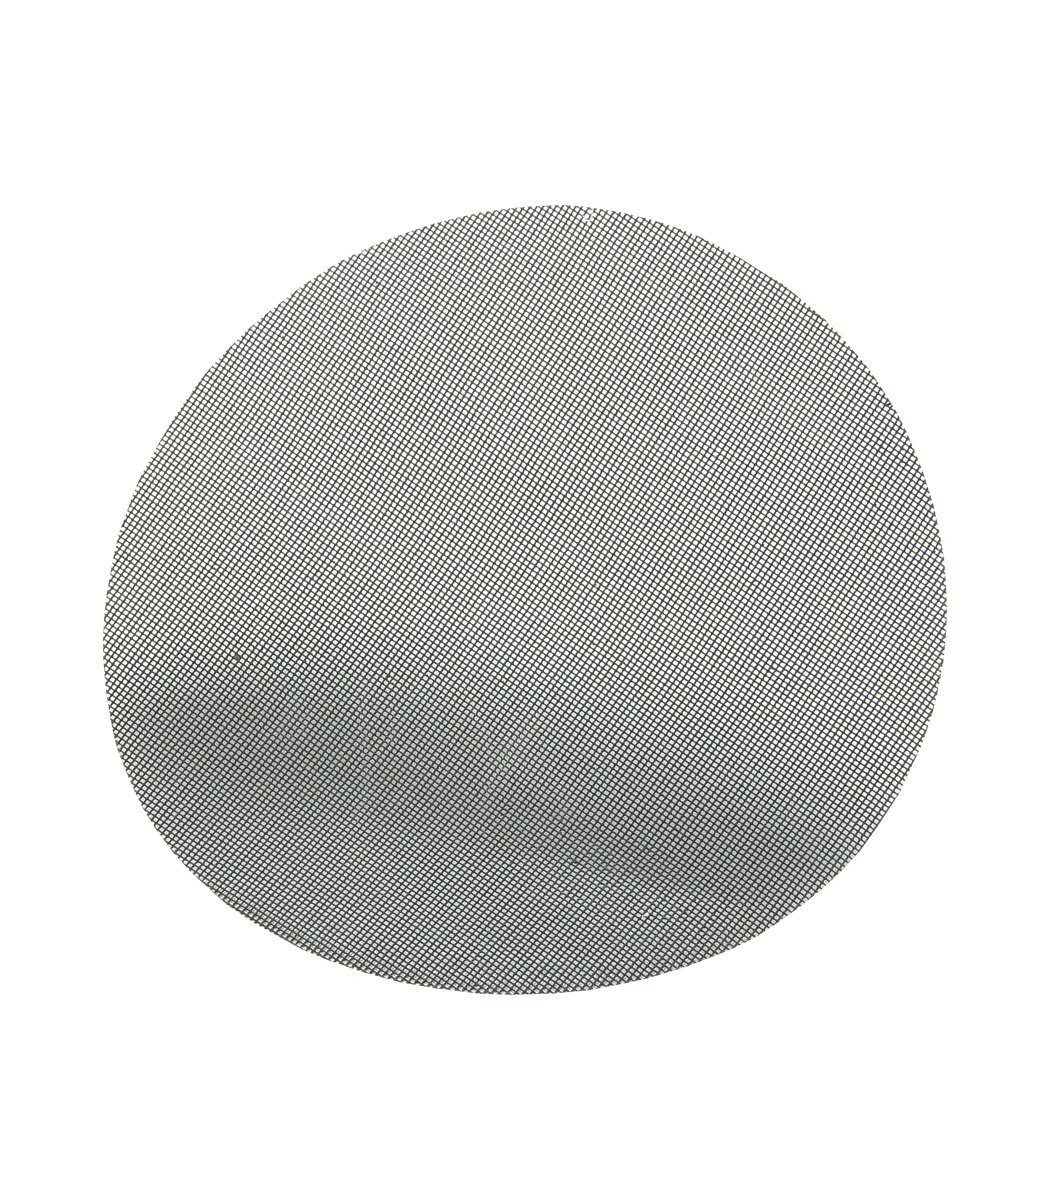 Sungold Abrasives 8140799 Silicon Carbide 100 Grit Screen Sanding Discs 10-Pack, 16''